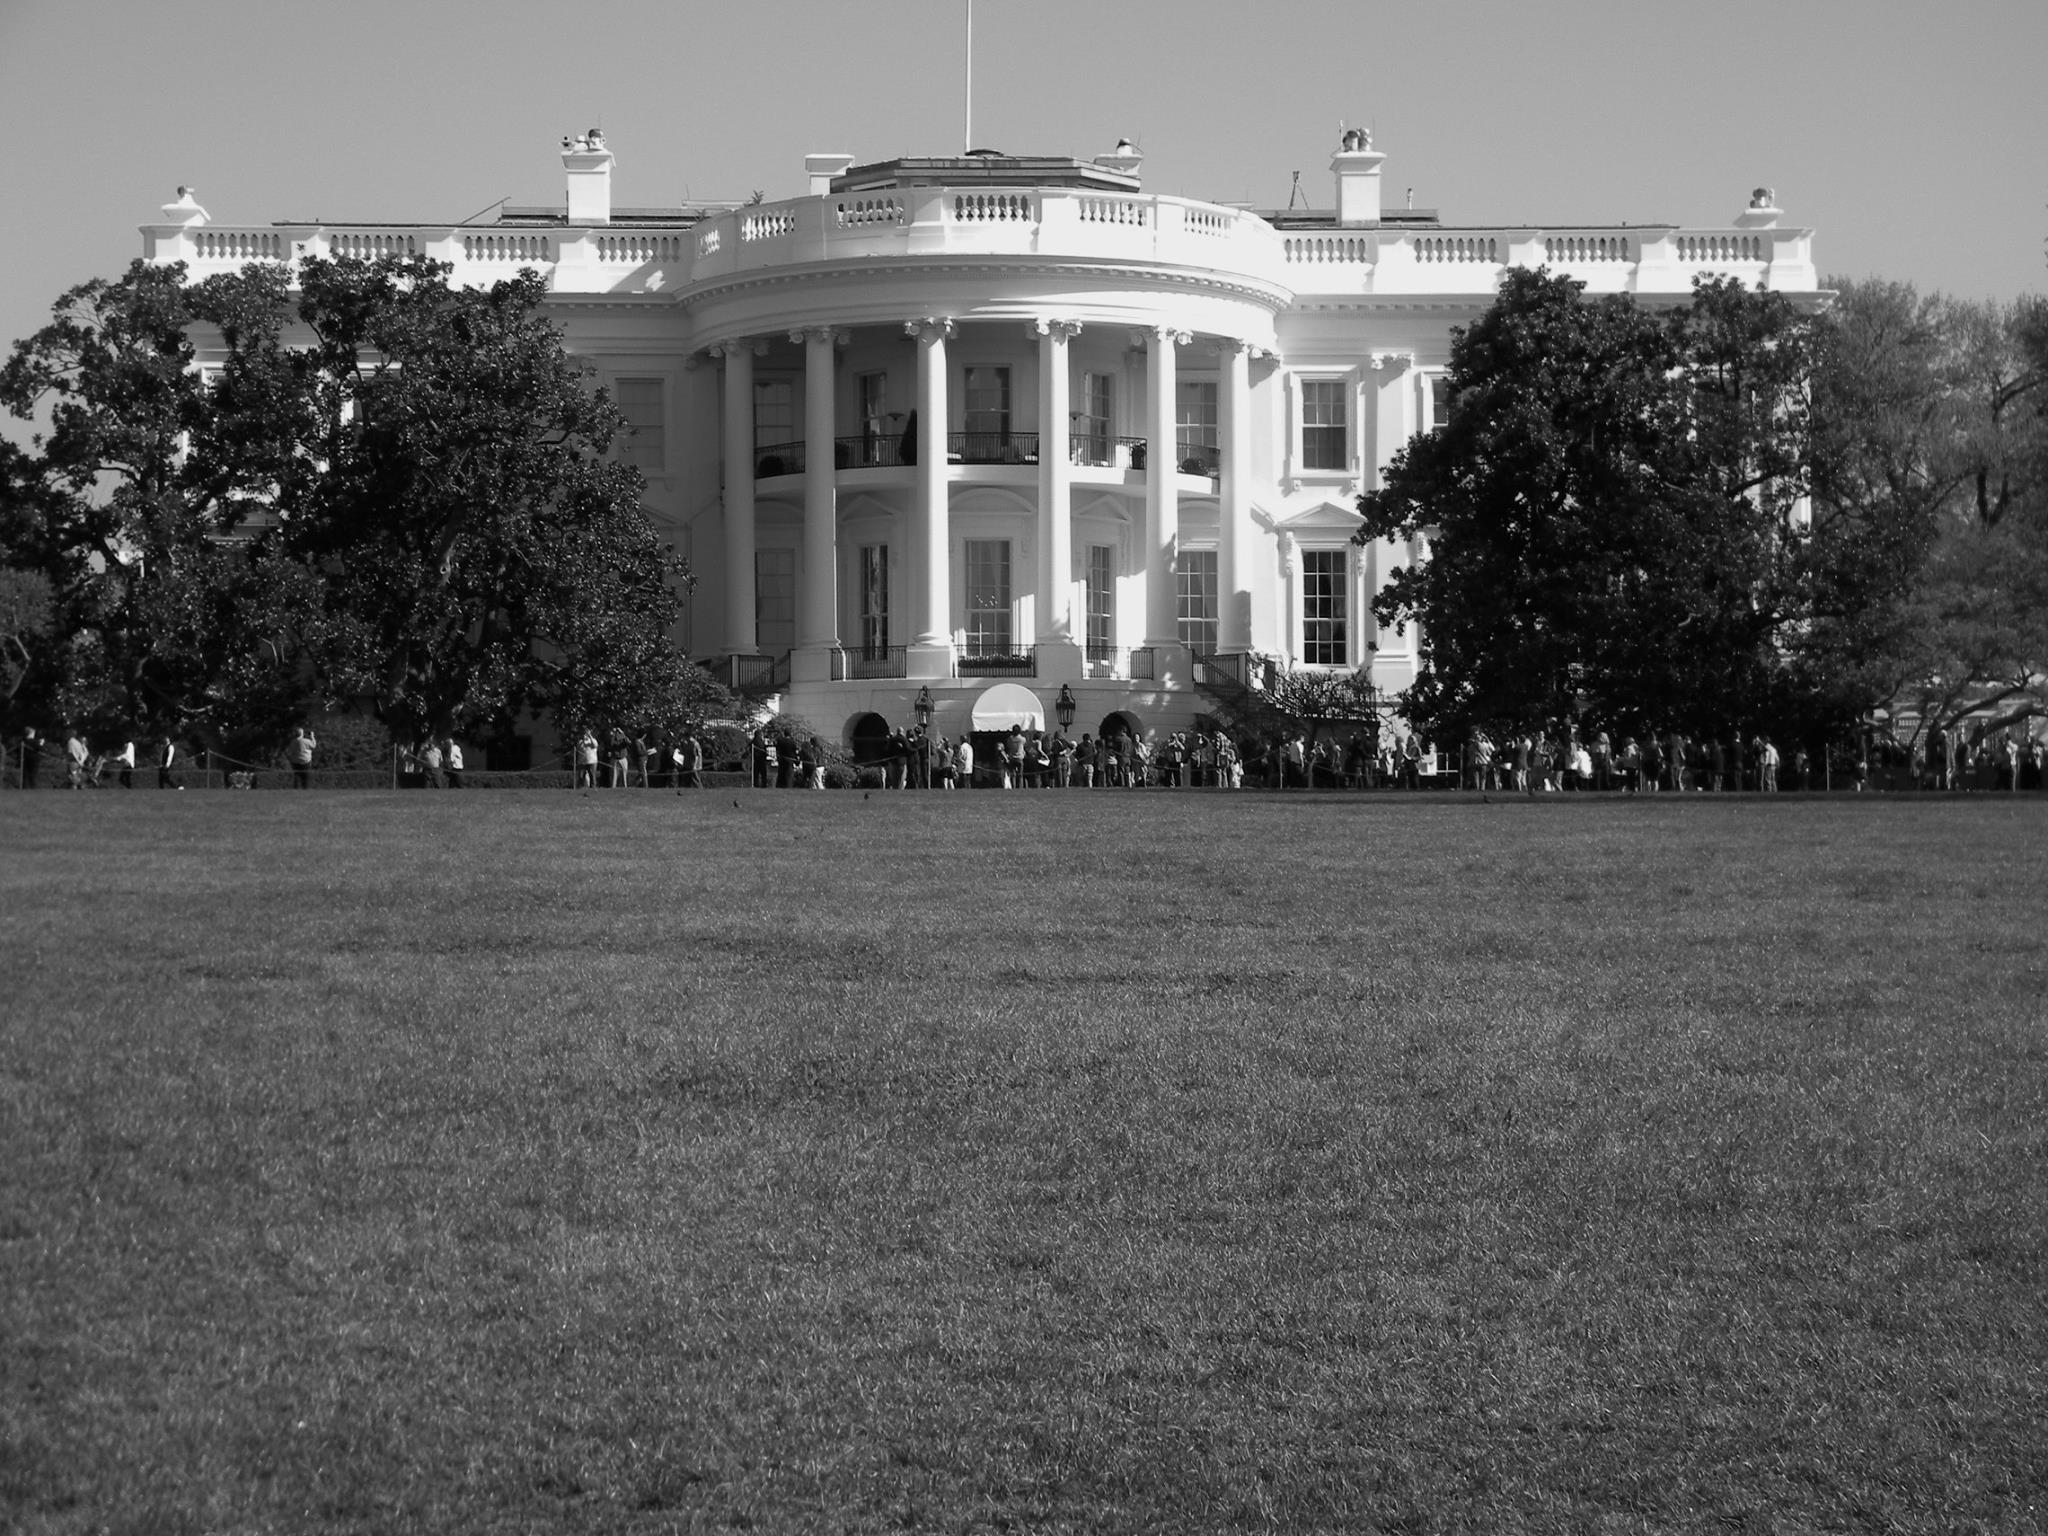 Hey, remember when some Muslim Kenyan Dictator lived here....that was fun...